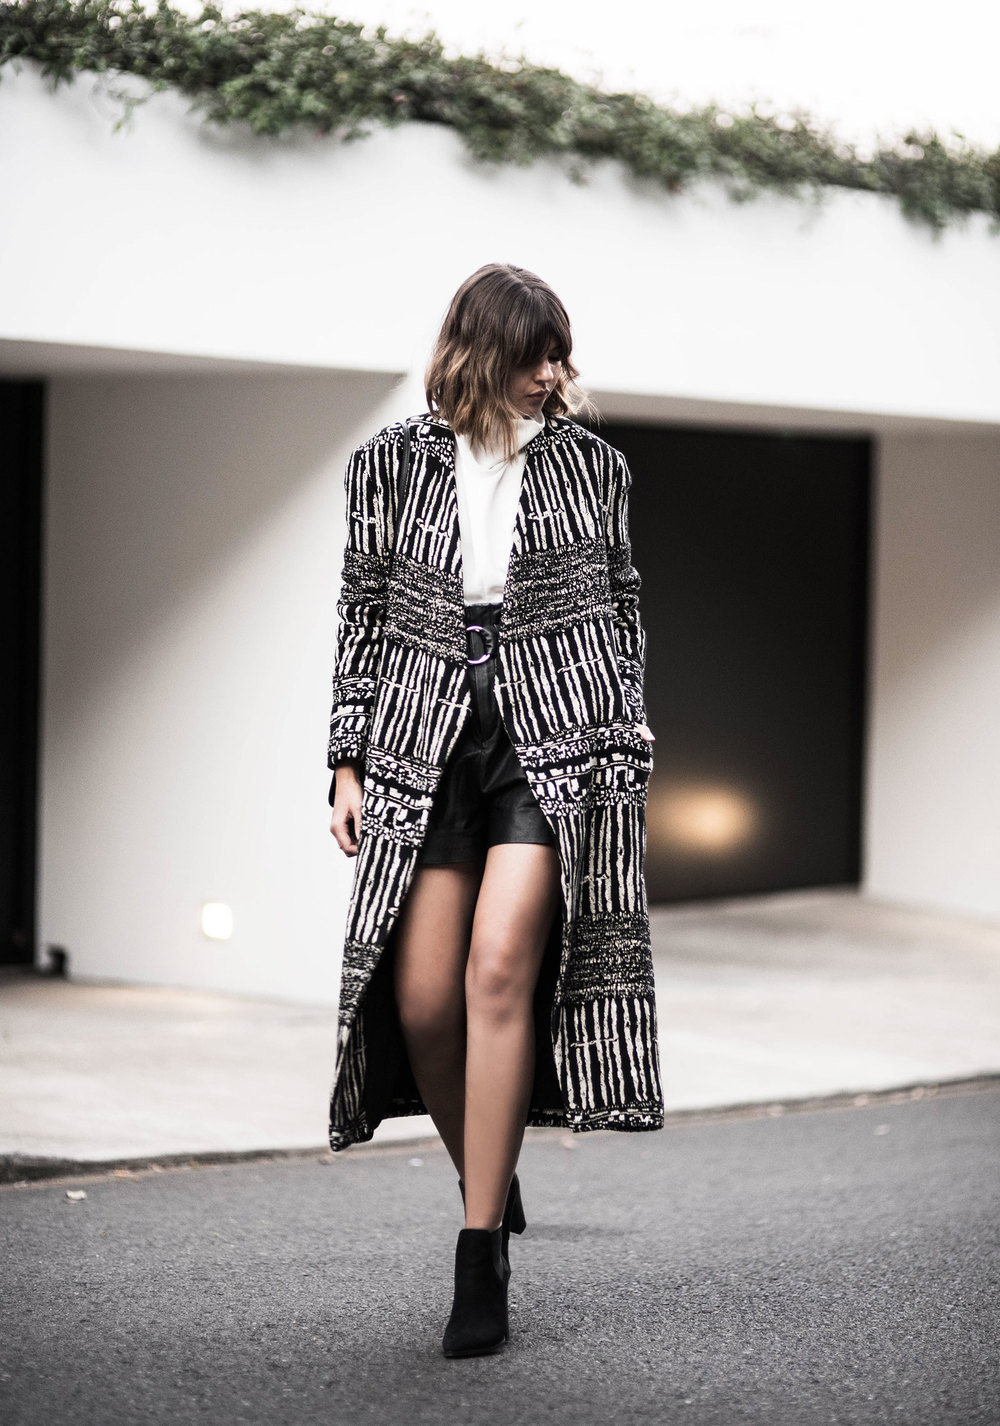 MBFWA: What I Wore On Day 3